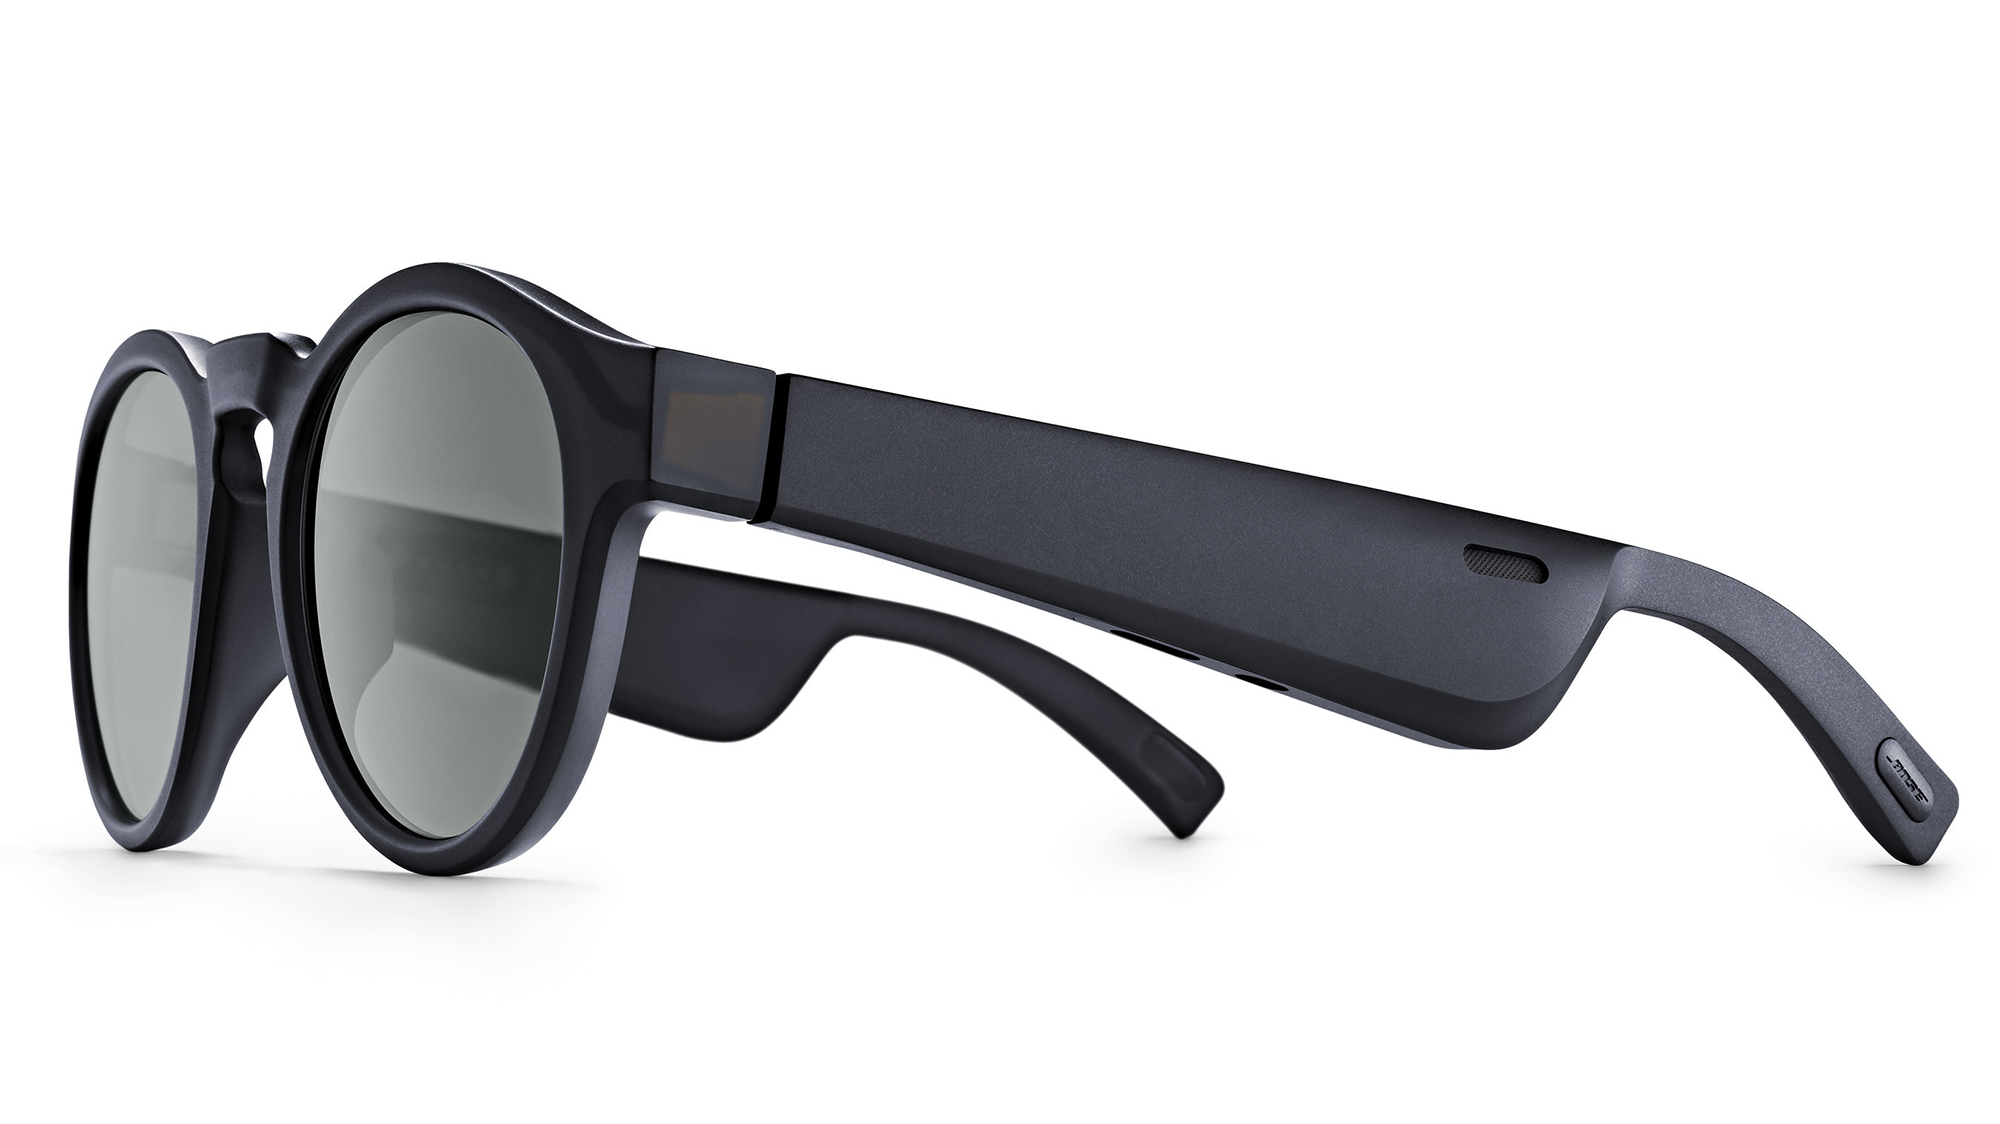 be207382b9b Bose has made a pair of music-playing sunglasses named Frames